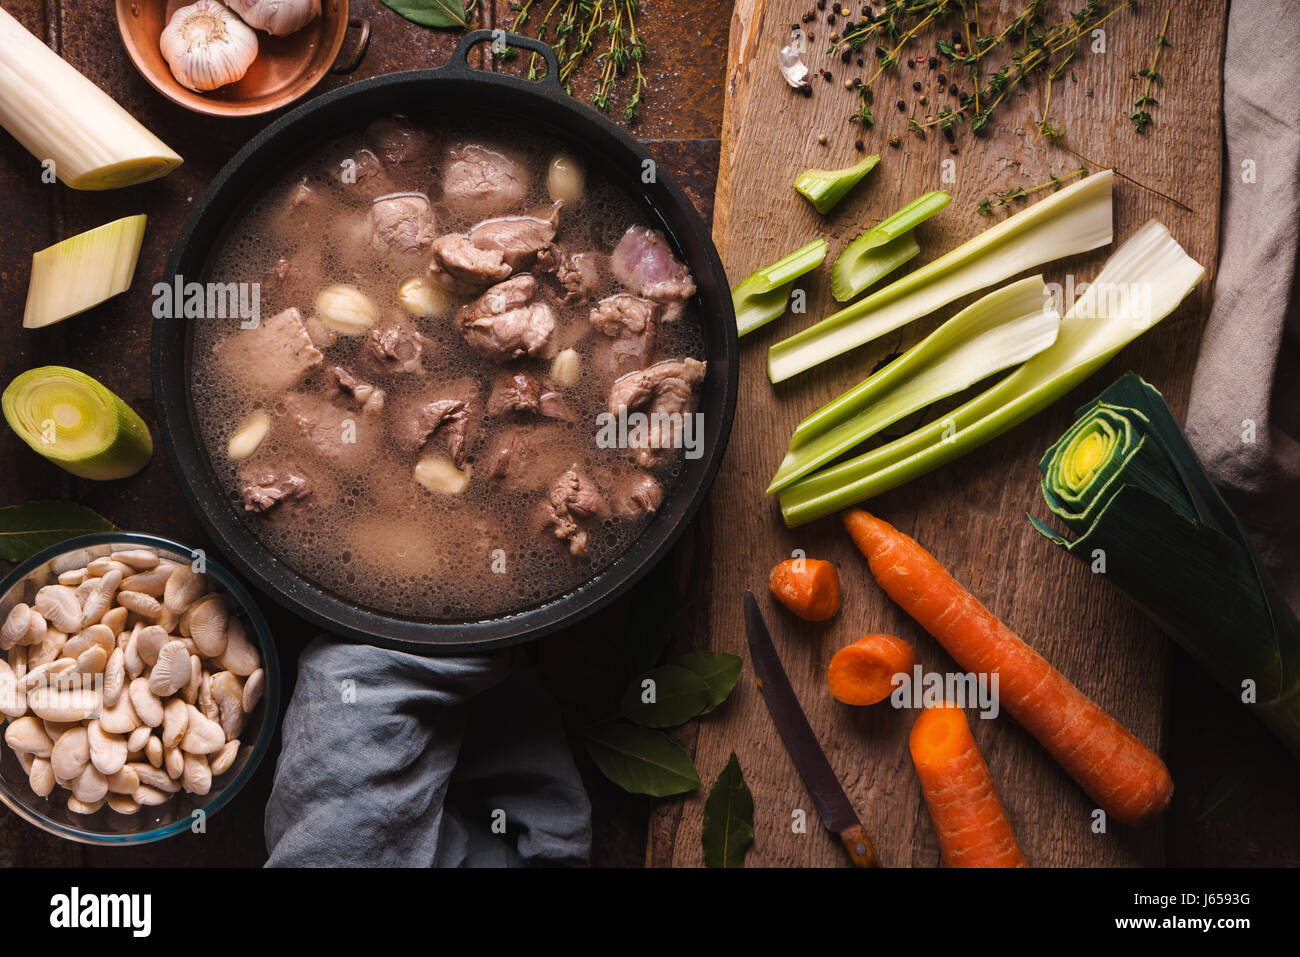 Preparation of cassoulet with pork and lamb and vegetables top view - Stock Image